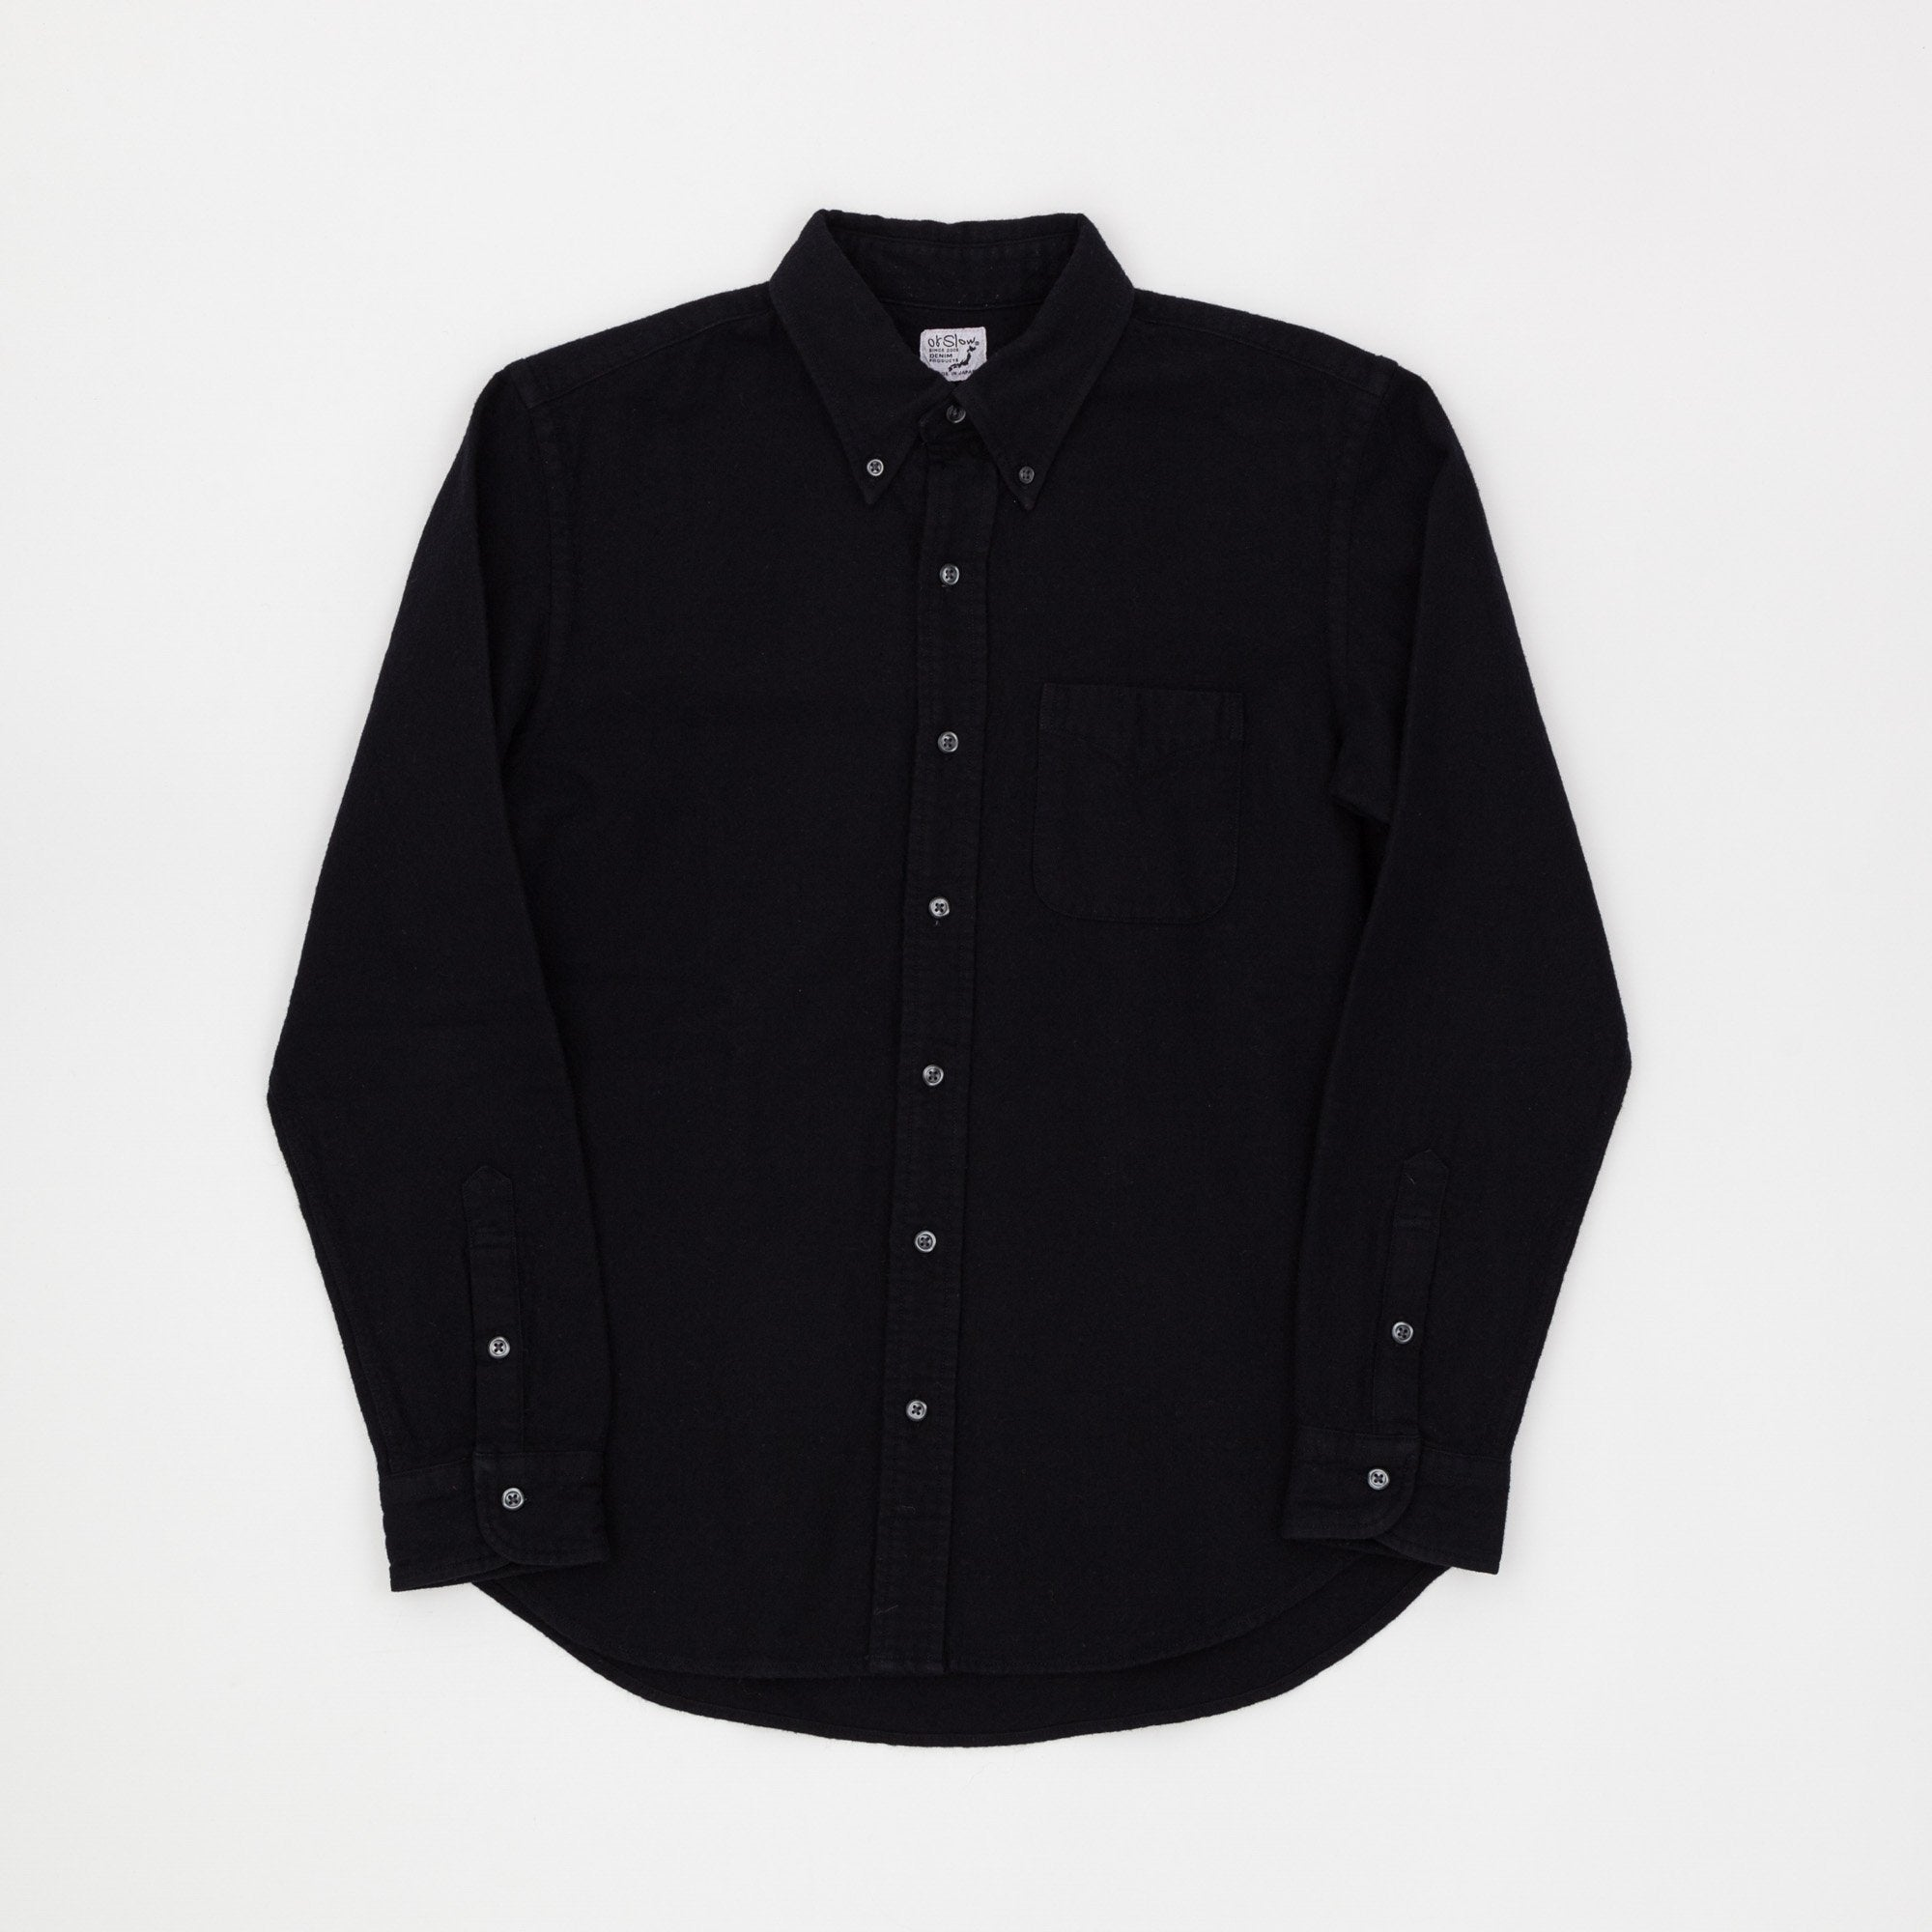 Orslow Wool BD Shirt